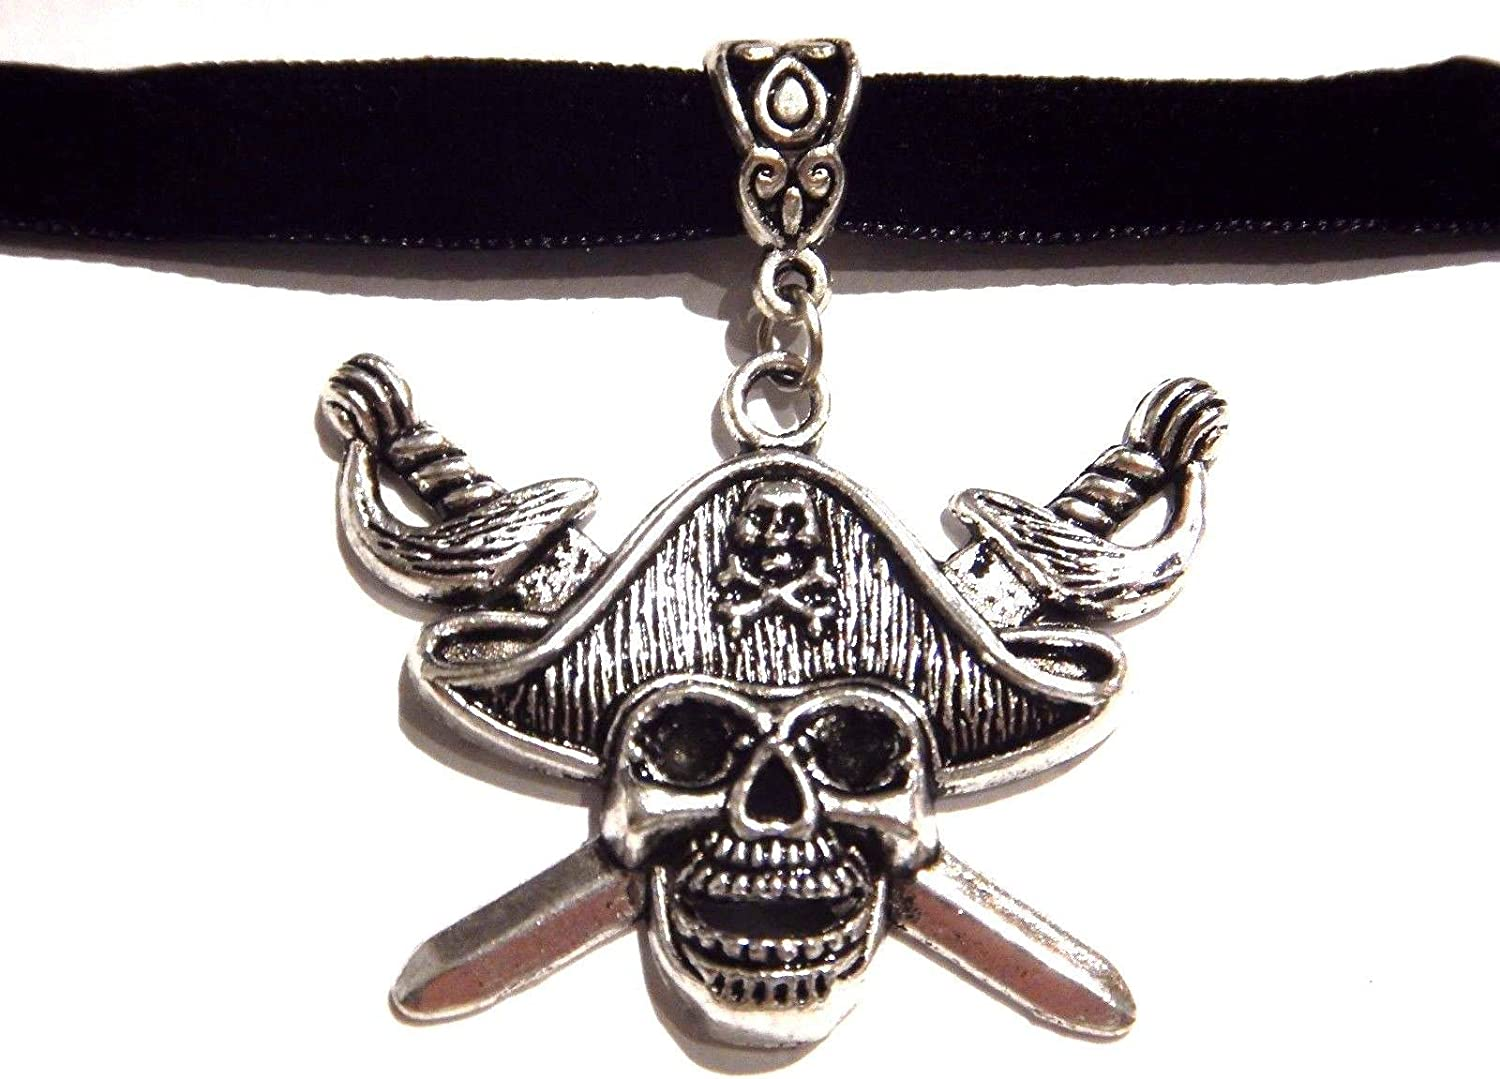 Black Skull and Crossbones Choker Necklace Collar Band Pirate Gothic Punk Metal